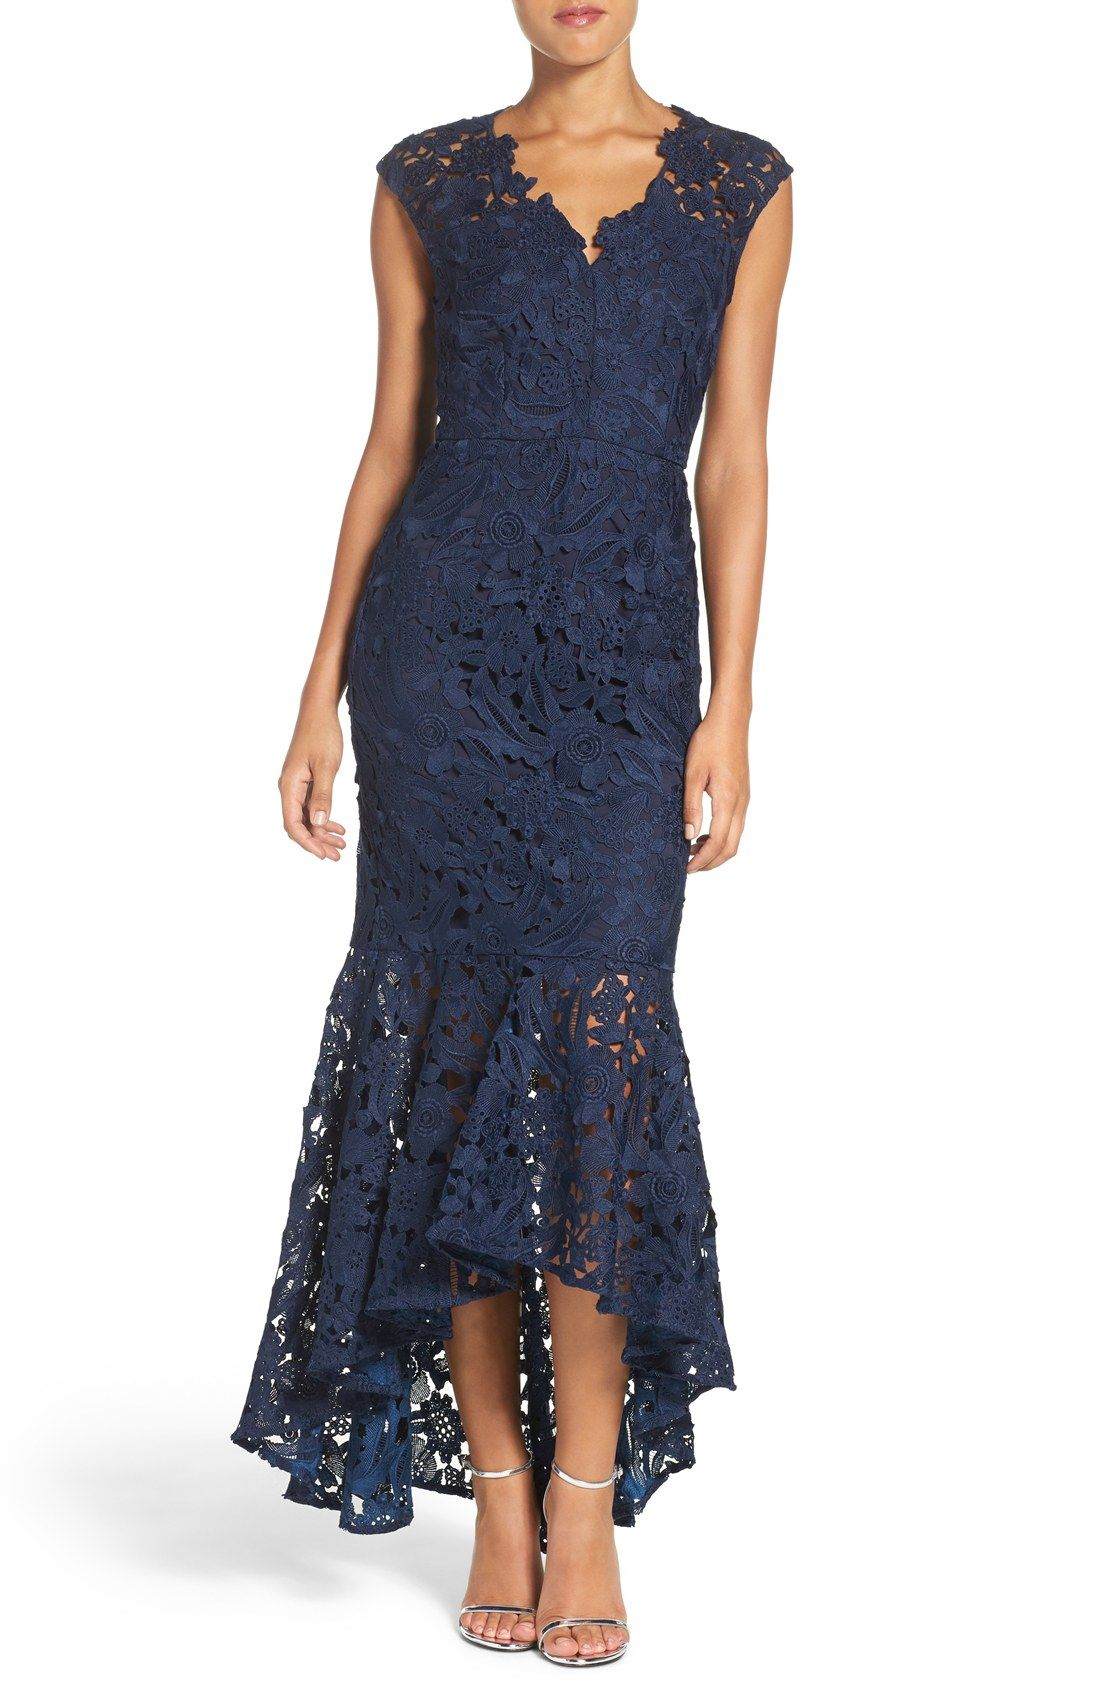 What to Wear to a Semi-Formal Fall Wedding | Dress ideas, Formal and ...